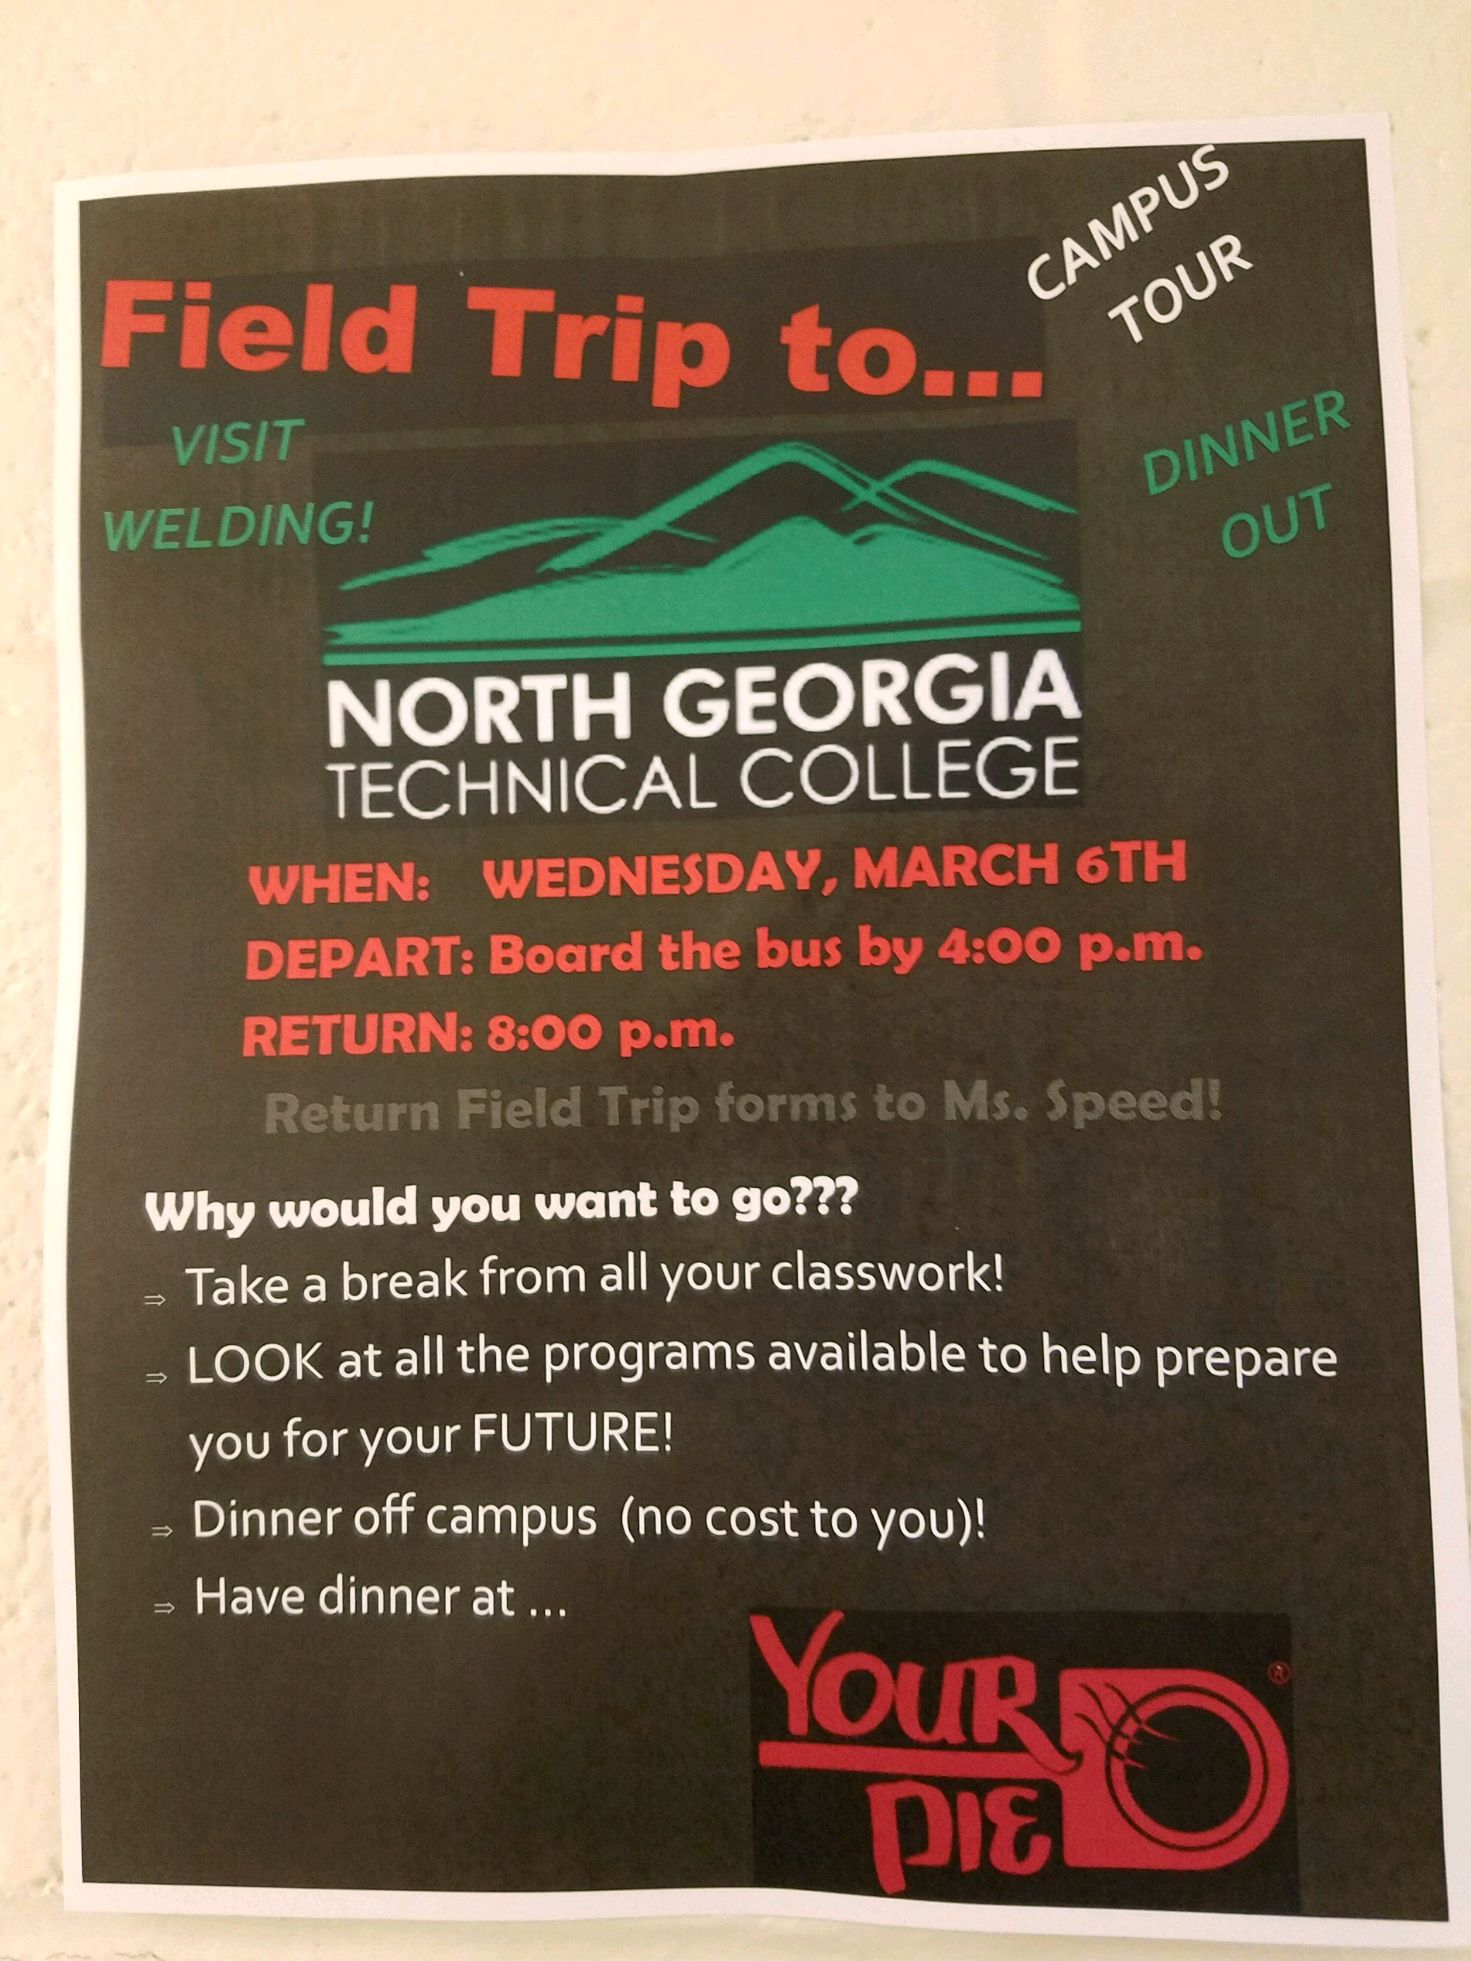 Rabun students, please be sure to attend school on March 6 to be a part of this exciting field trip!